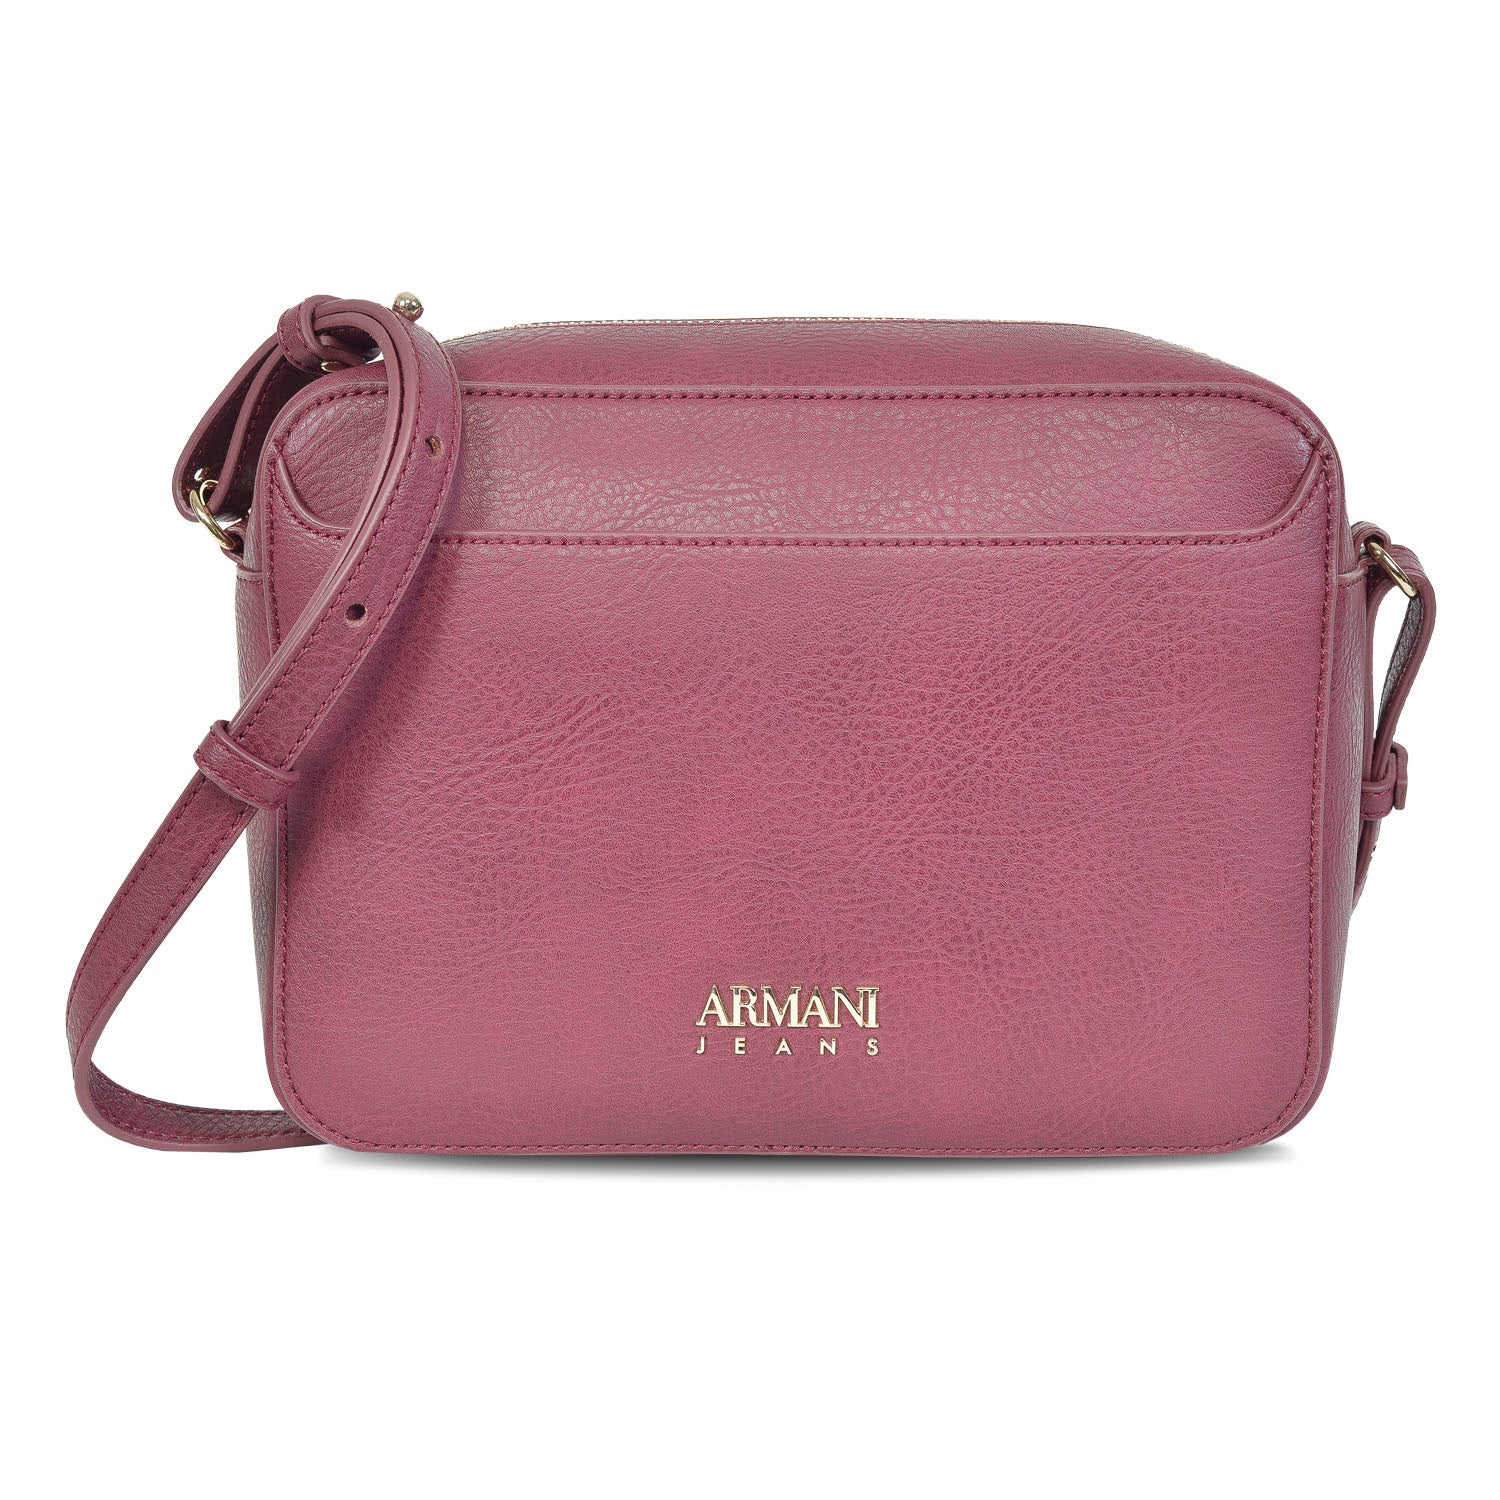 ARMANI DESIGNER WOMEN'S LEATHER MINI pouch SLING BAG